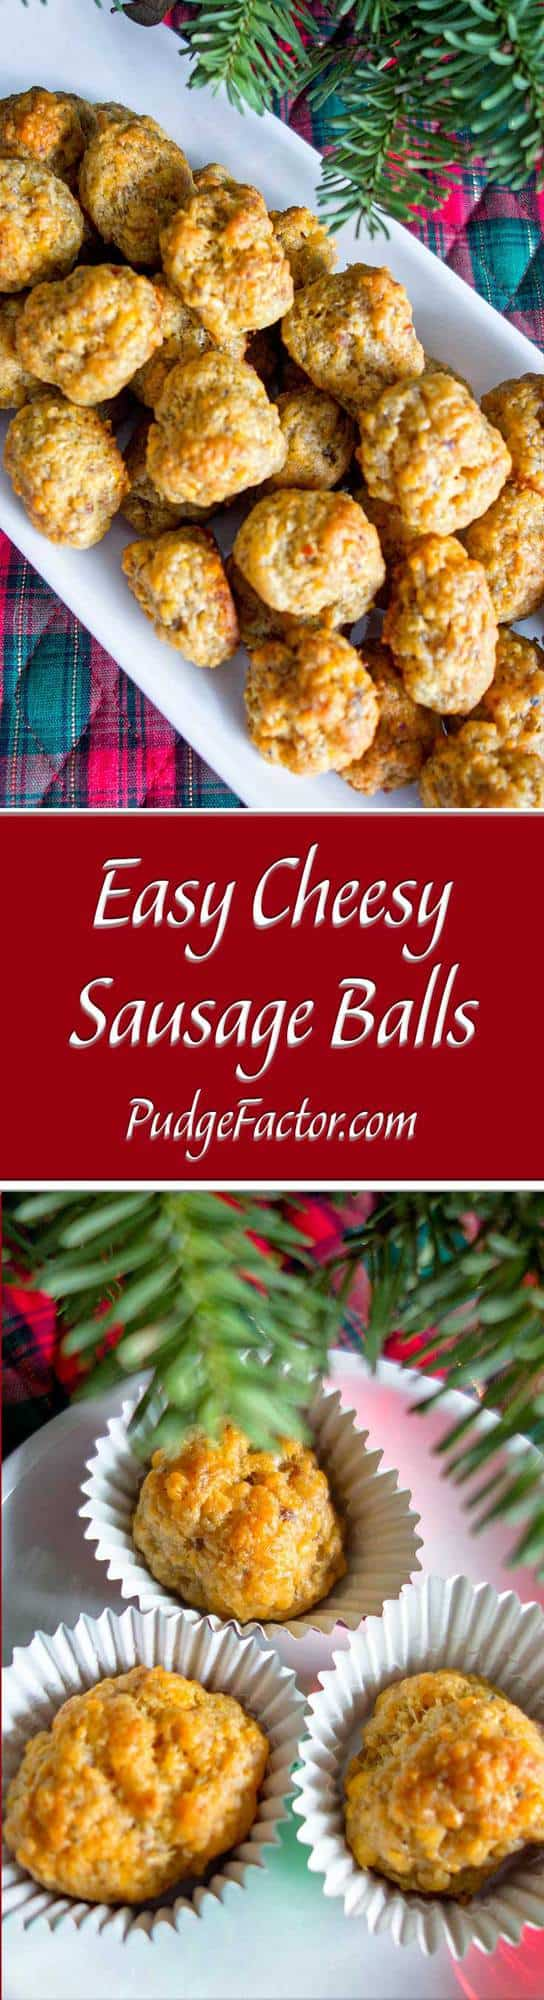 Easy Cheesy Sausage Balls